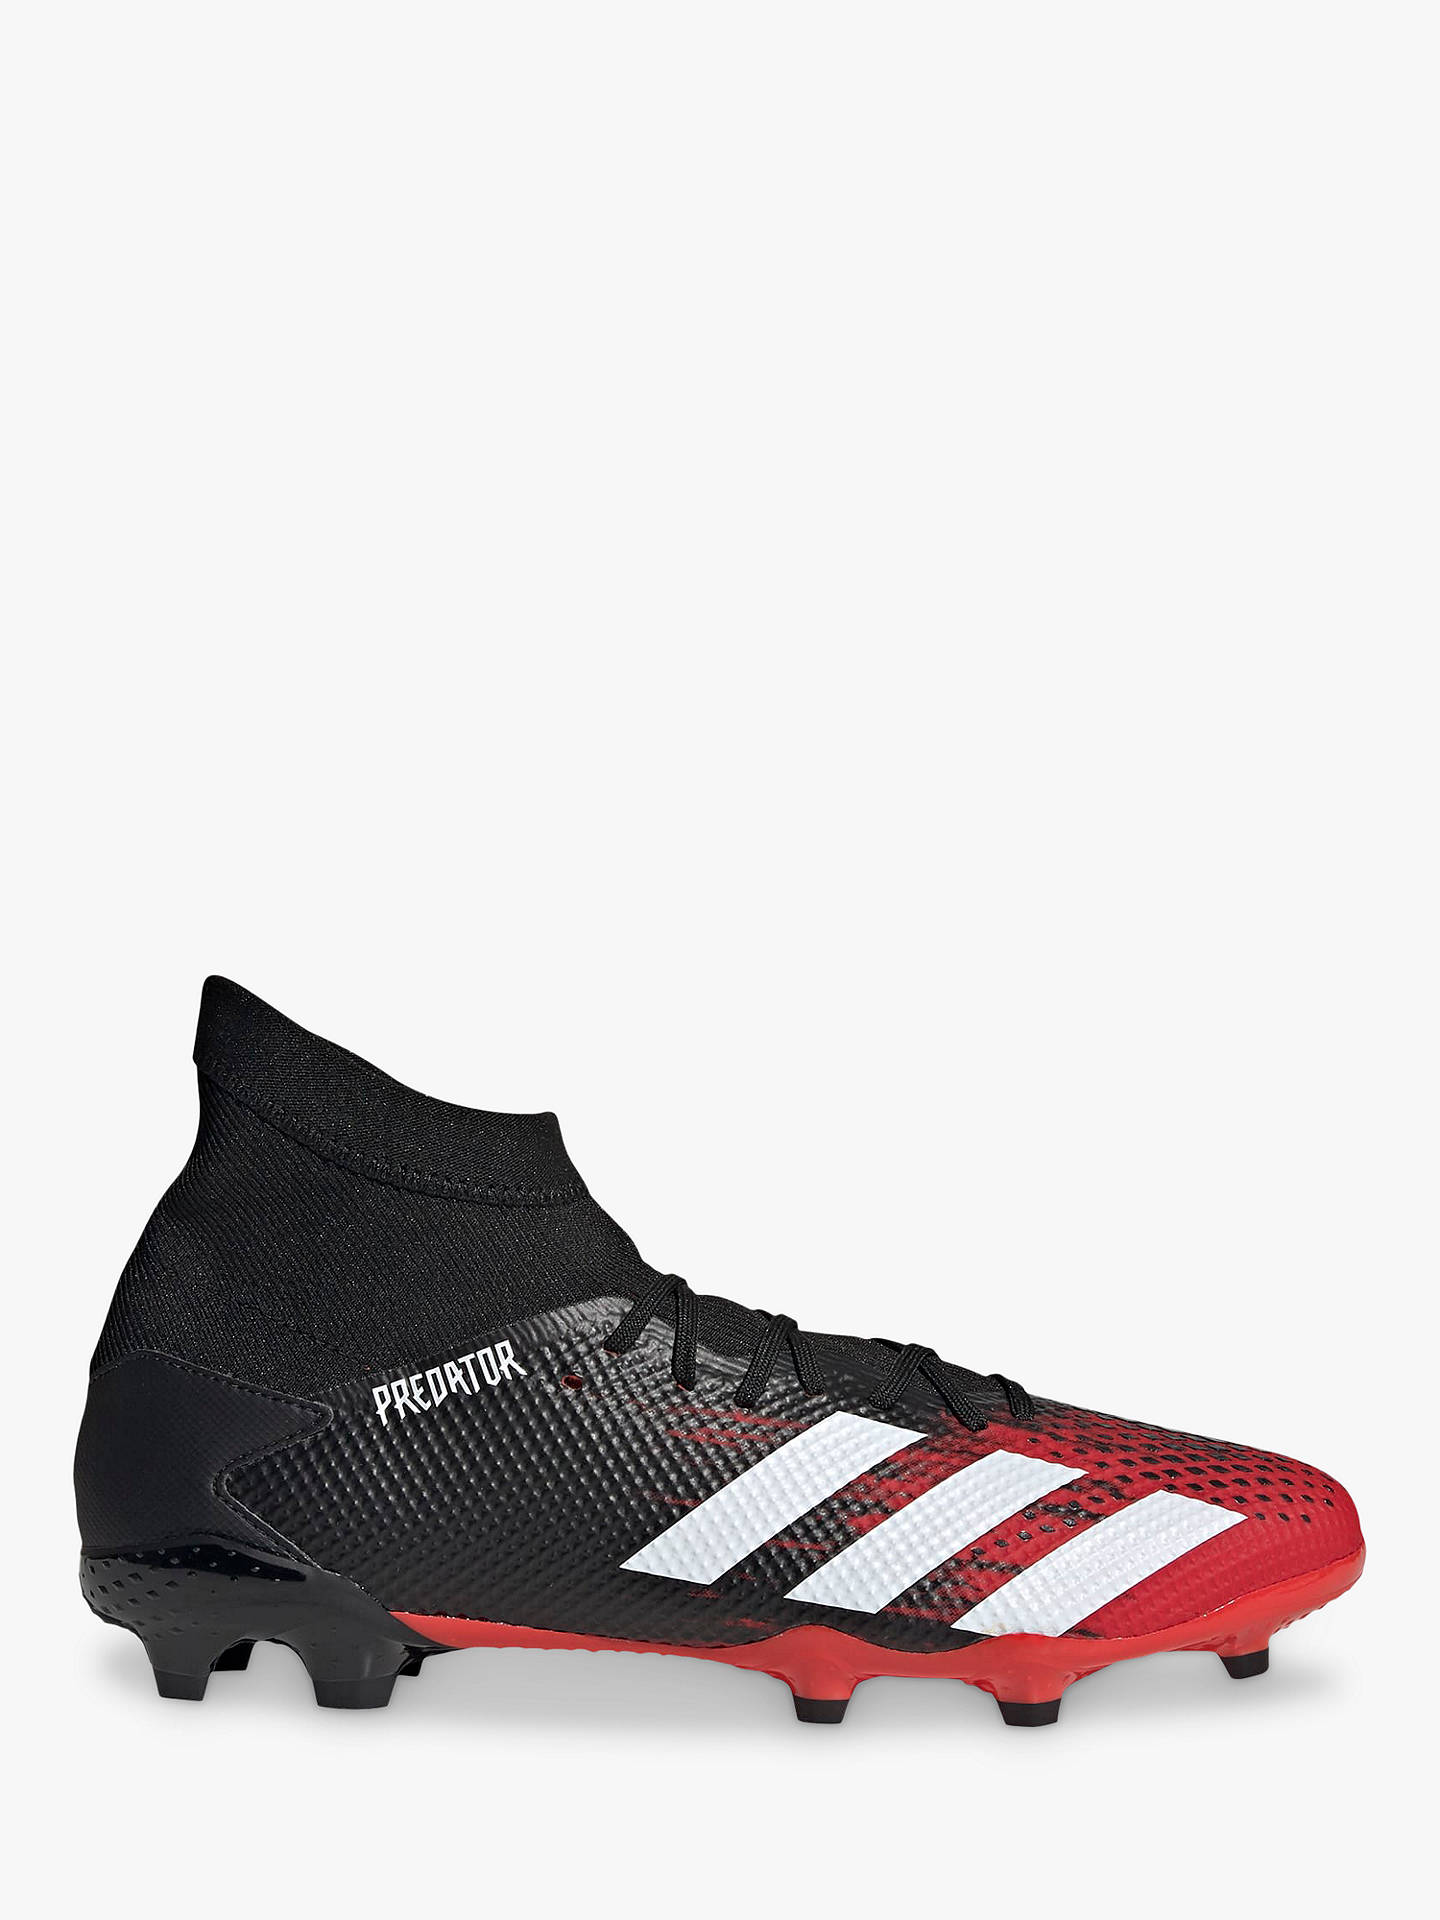 Cromático importar limpiar  adidas Predator 20.3 Firm Ground Men's Football Boots, Core Black/FTWR  White/Active Red at John Lewis & Partners